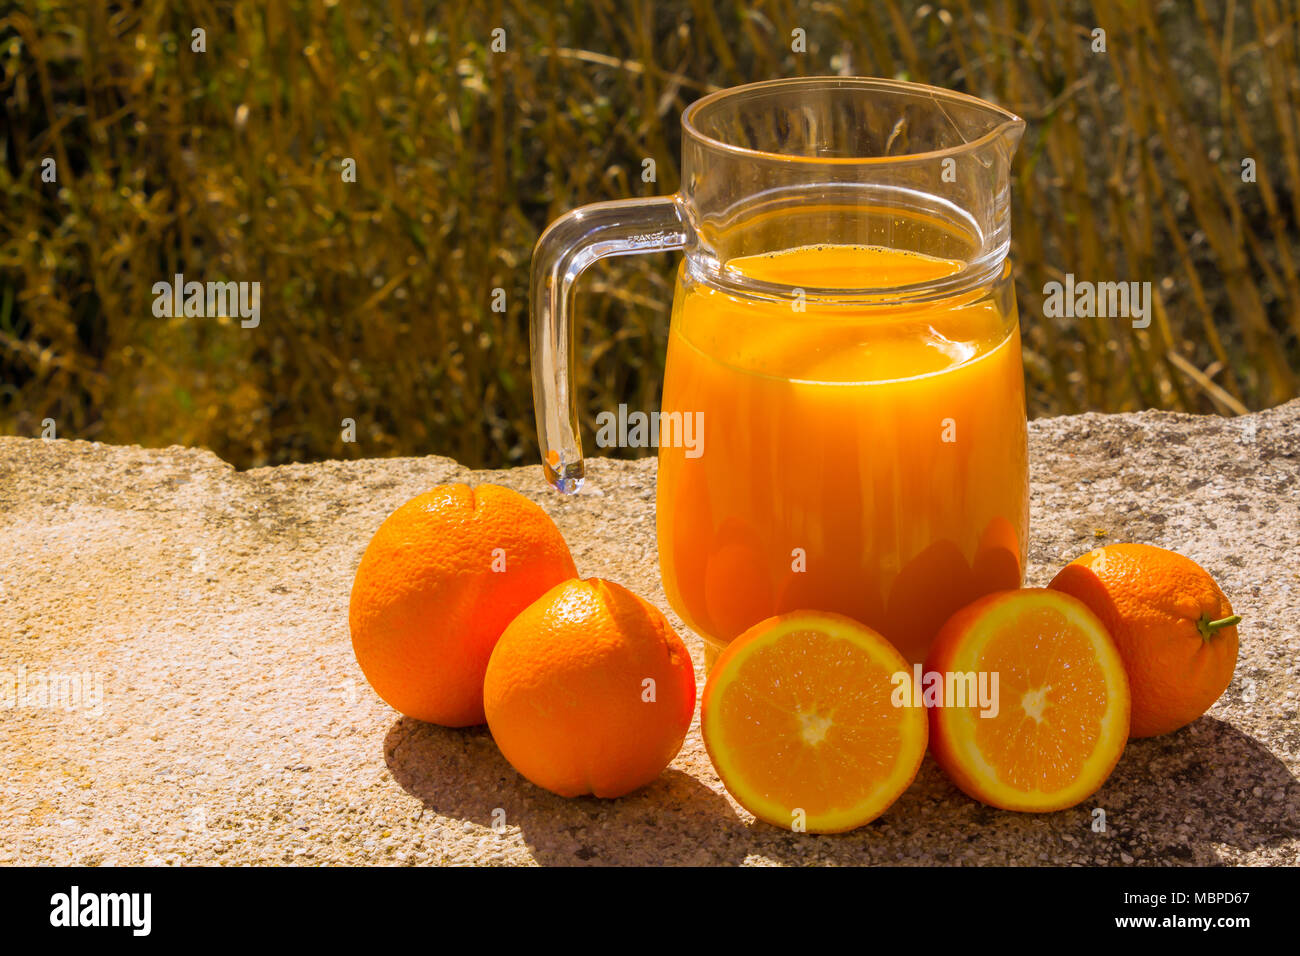 Pitcher of Freshly squeezed Orange Juice, with fresh Oranges, Outside with a Natural Backdrop, March 2018, Almeria Andalucia Spain. - Stock Image